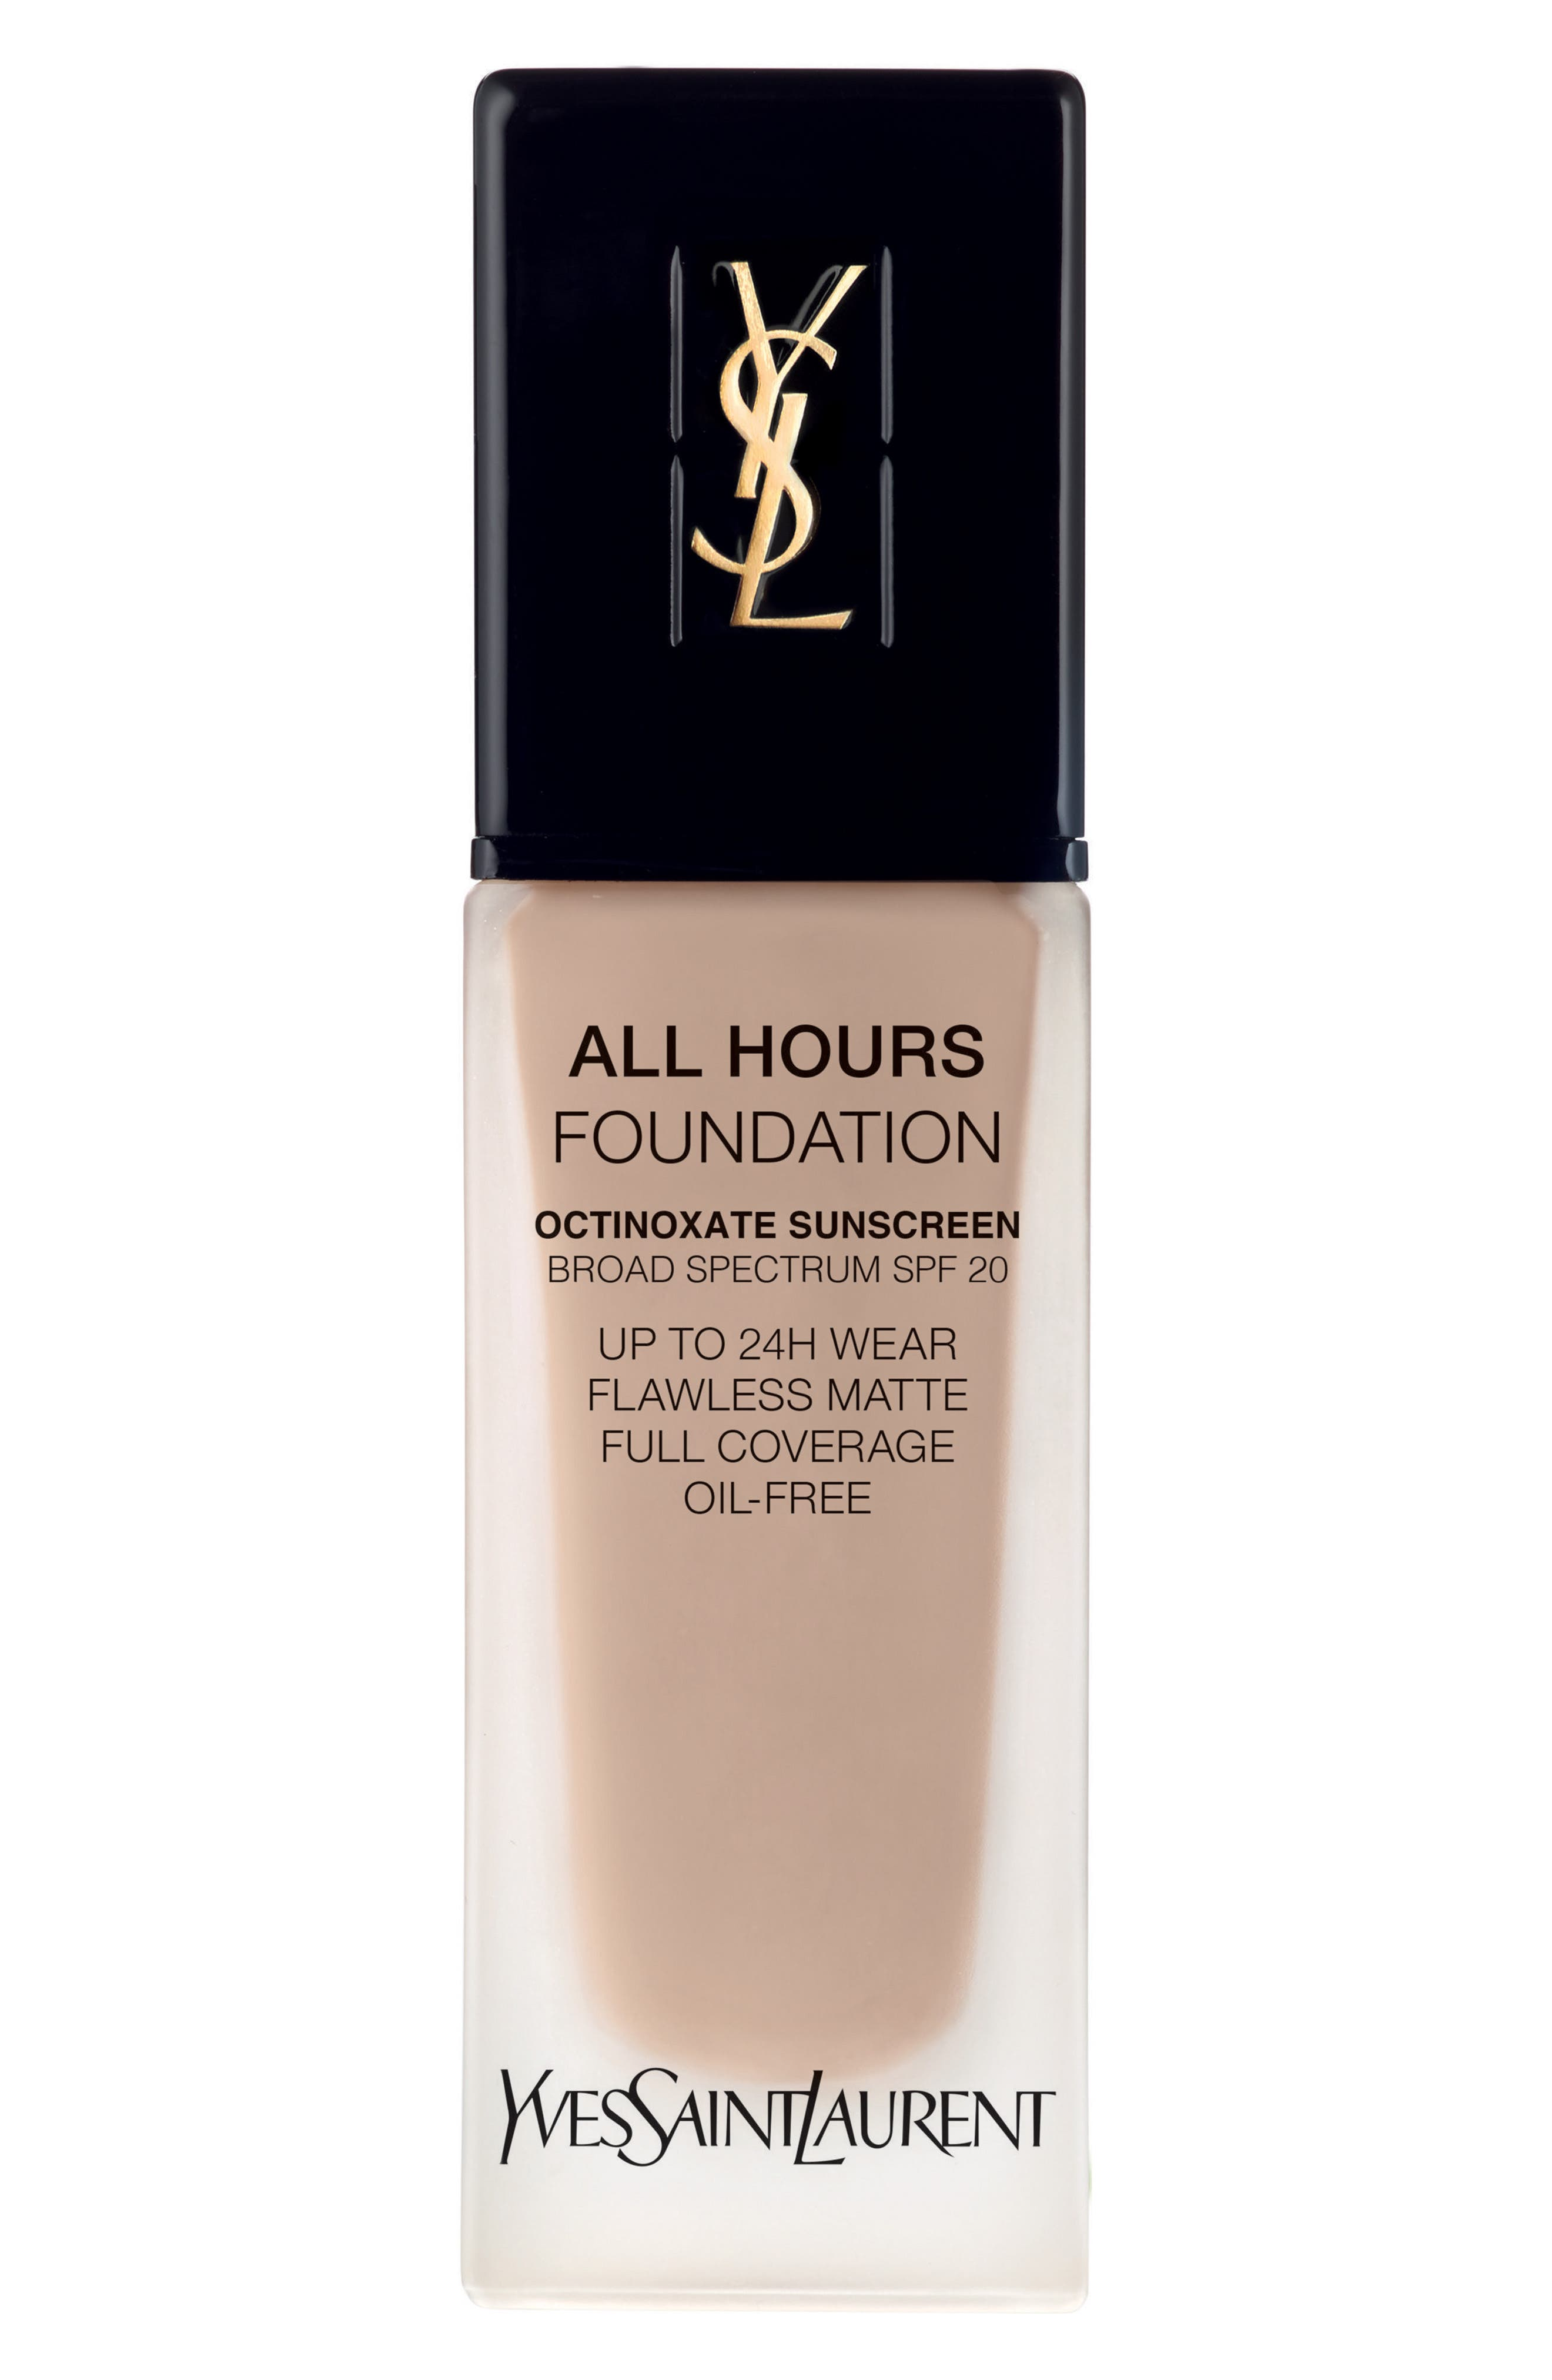 Yves Saint Laurent All Hours Full Coverage Matte Foundation Spf 20 - Br30 Cool Almond